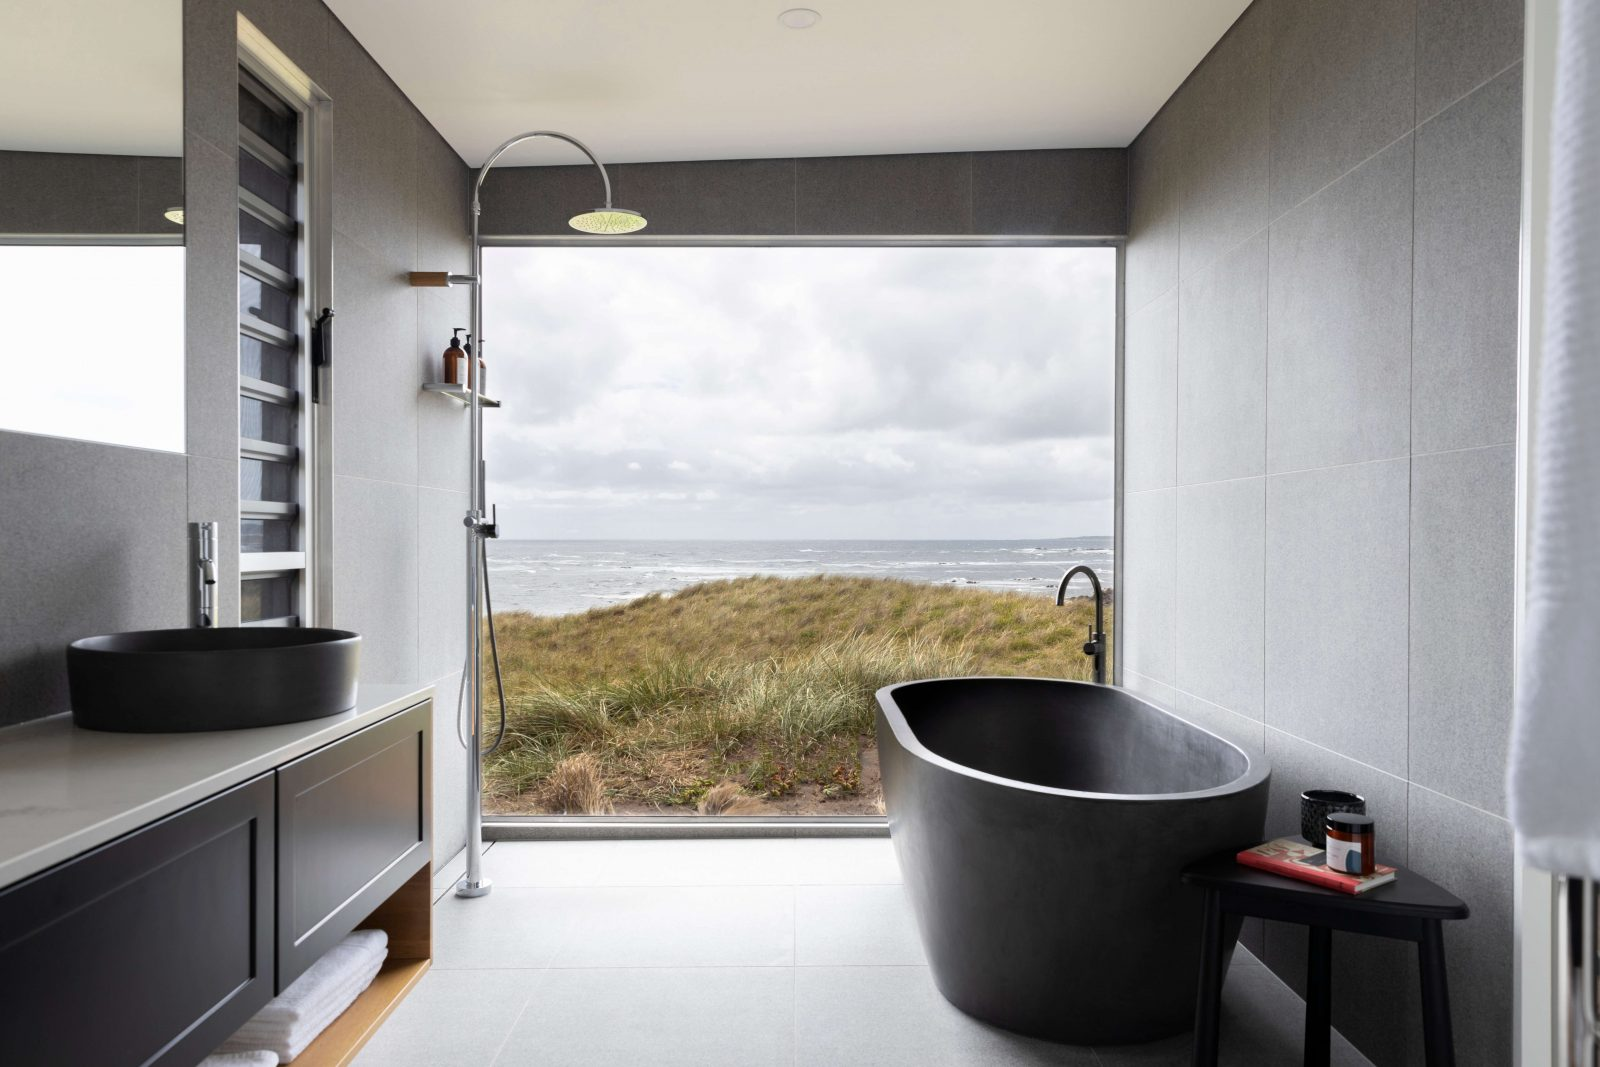 Luxuriate in your bespoke bathroom, with panoramic views of the Southern Ocean